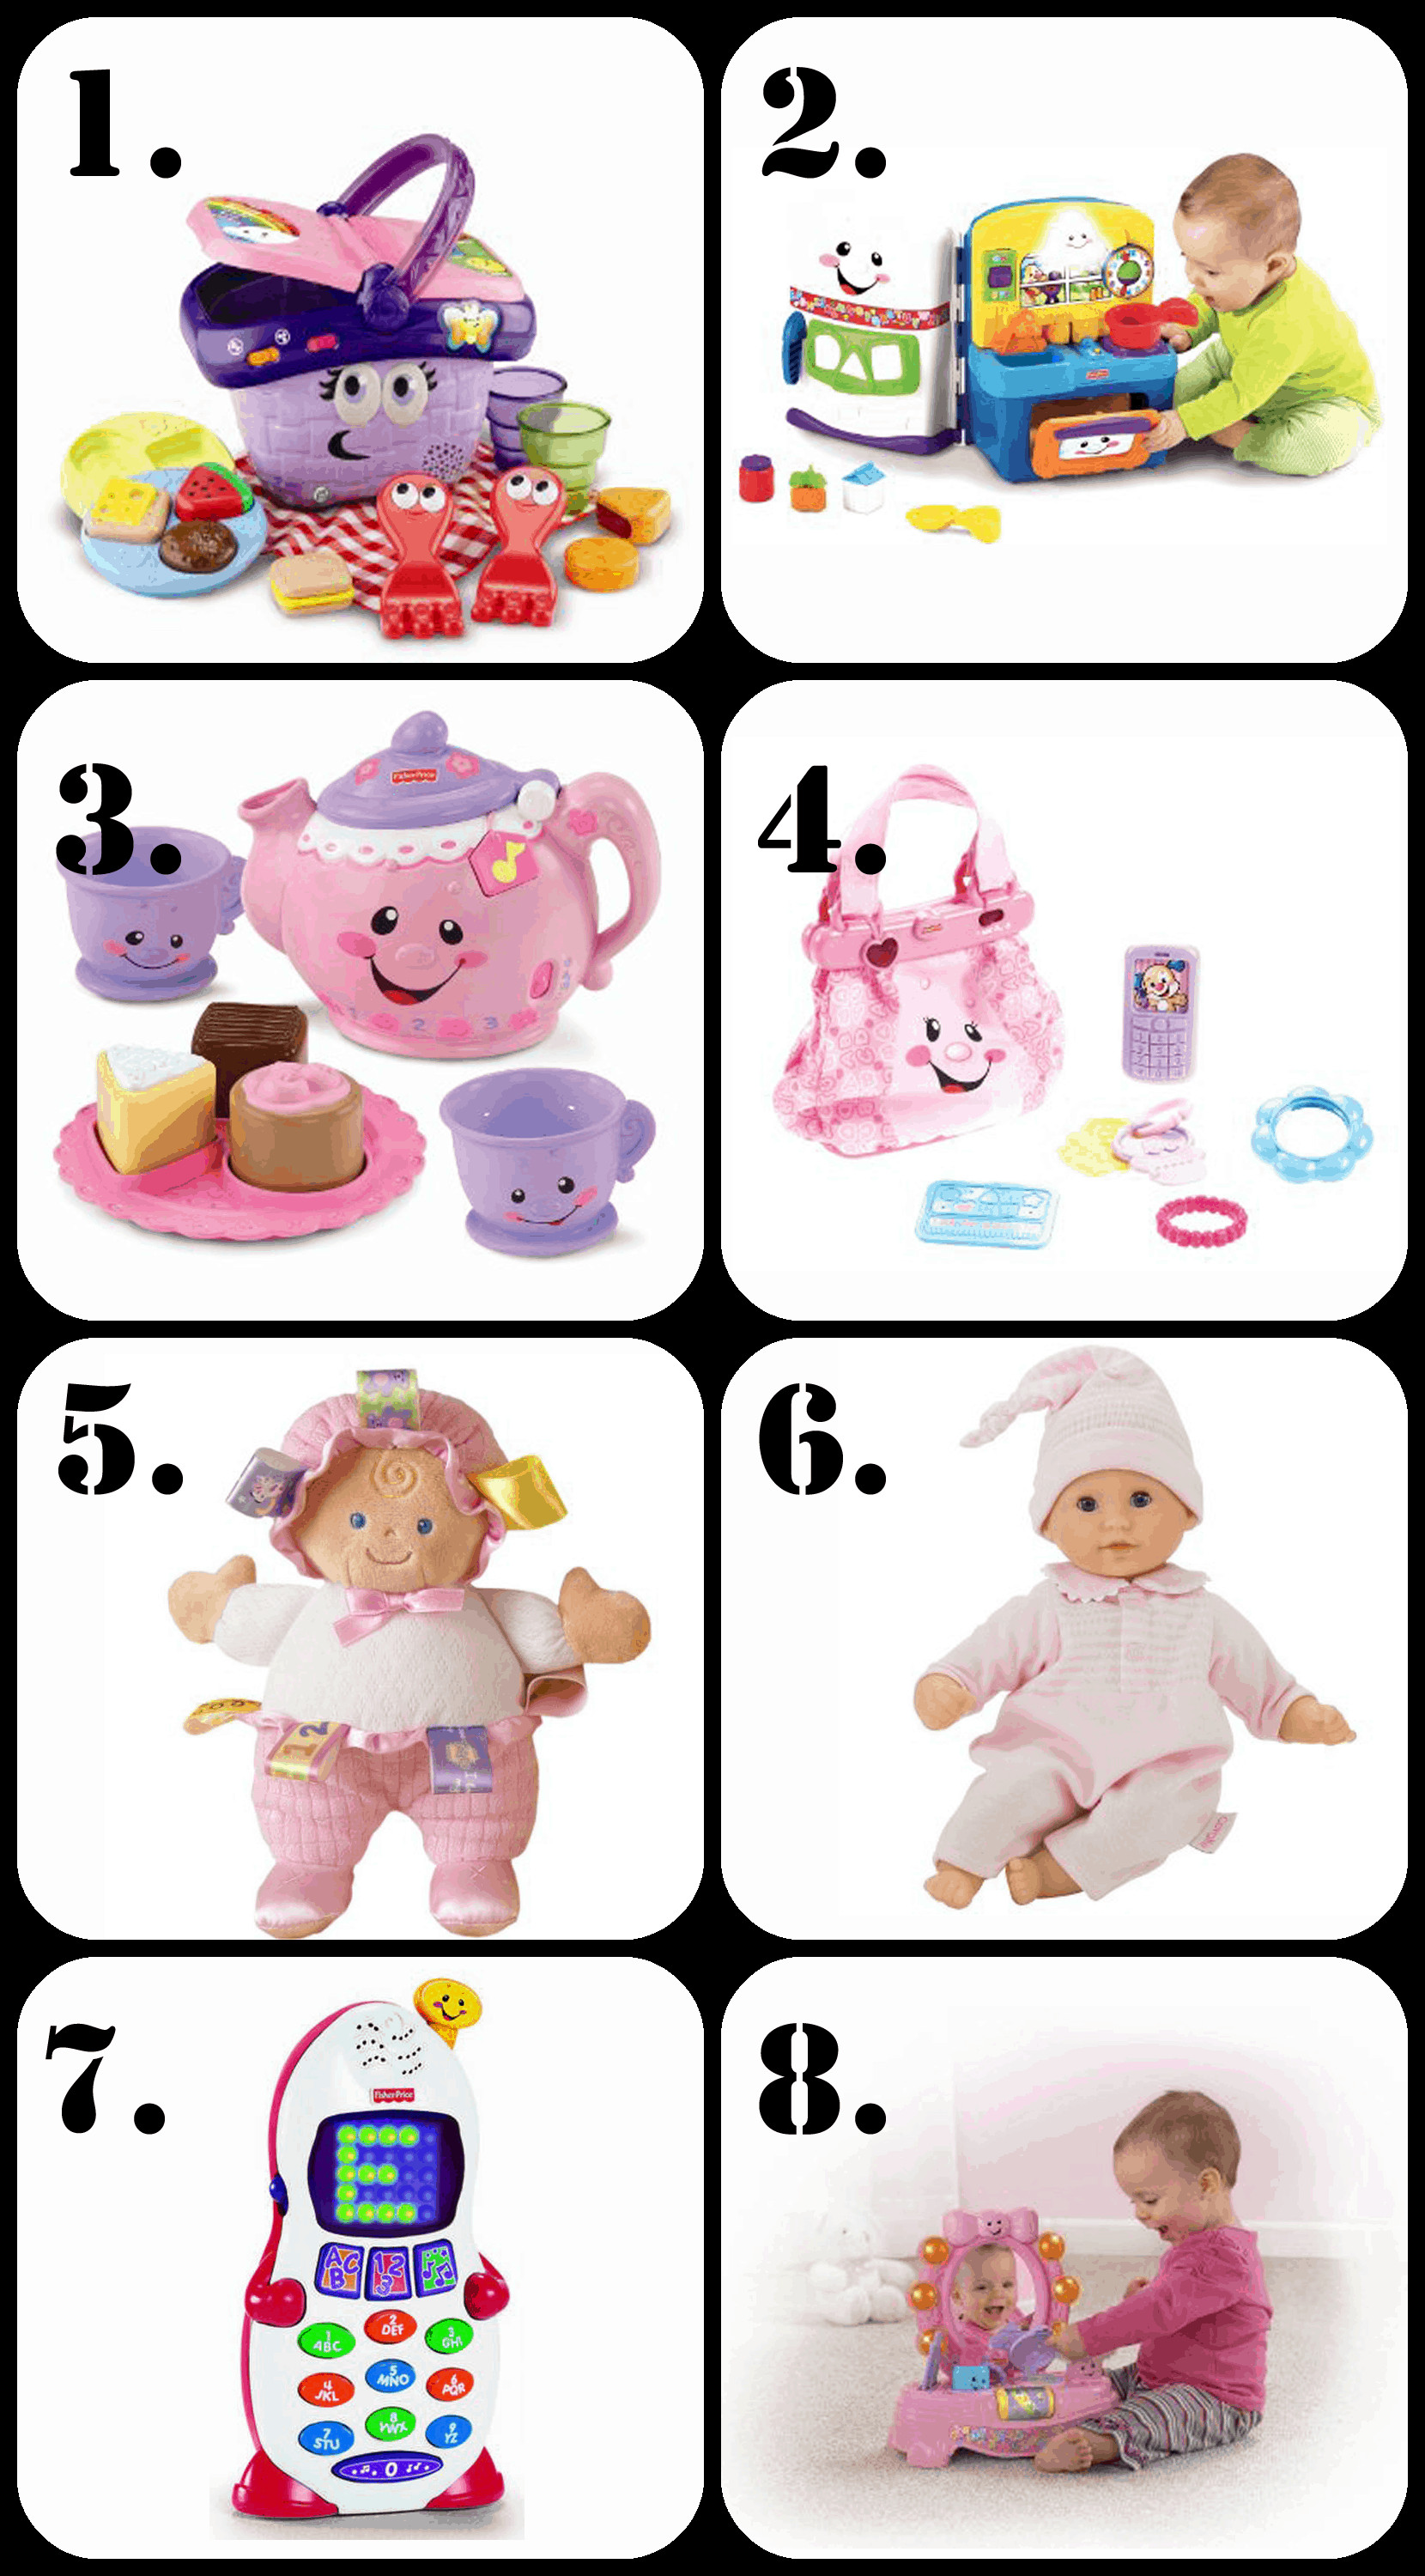 Best ideas about Gift Ideas For 2 Year Old Baby Girl . Save or Pin The Ultimate List of Gift Ideas for a 1 Year Old Girl Now.